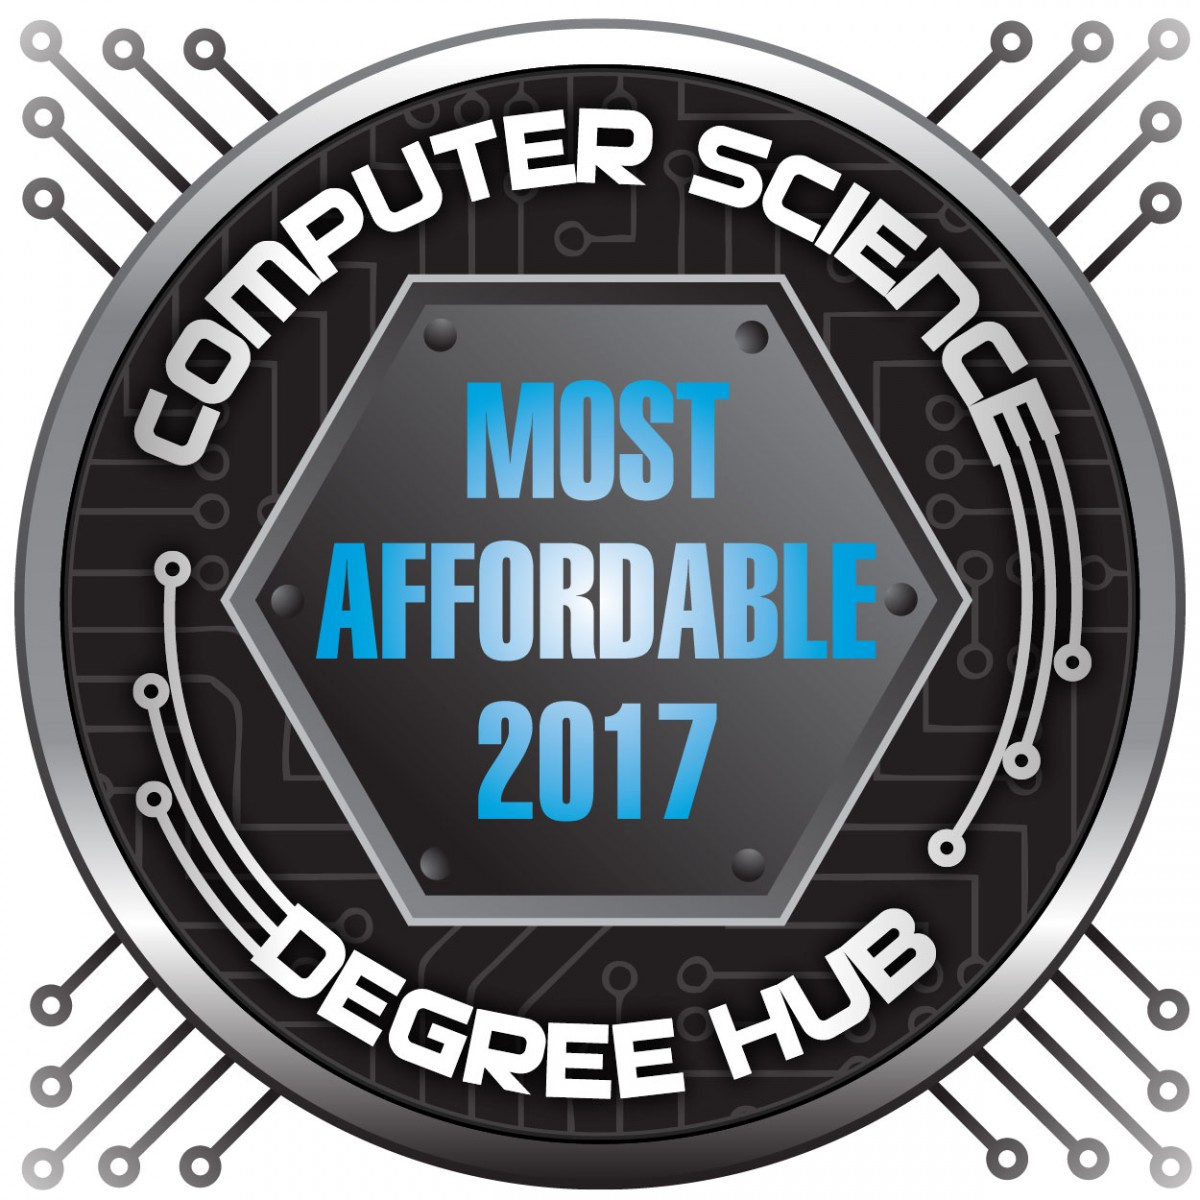 30 Most Affordable Online Bachelor's Degrees in Computer Science 2017